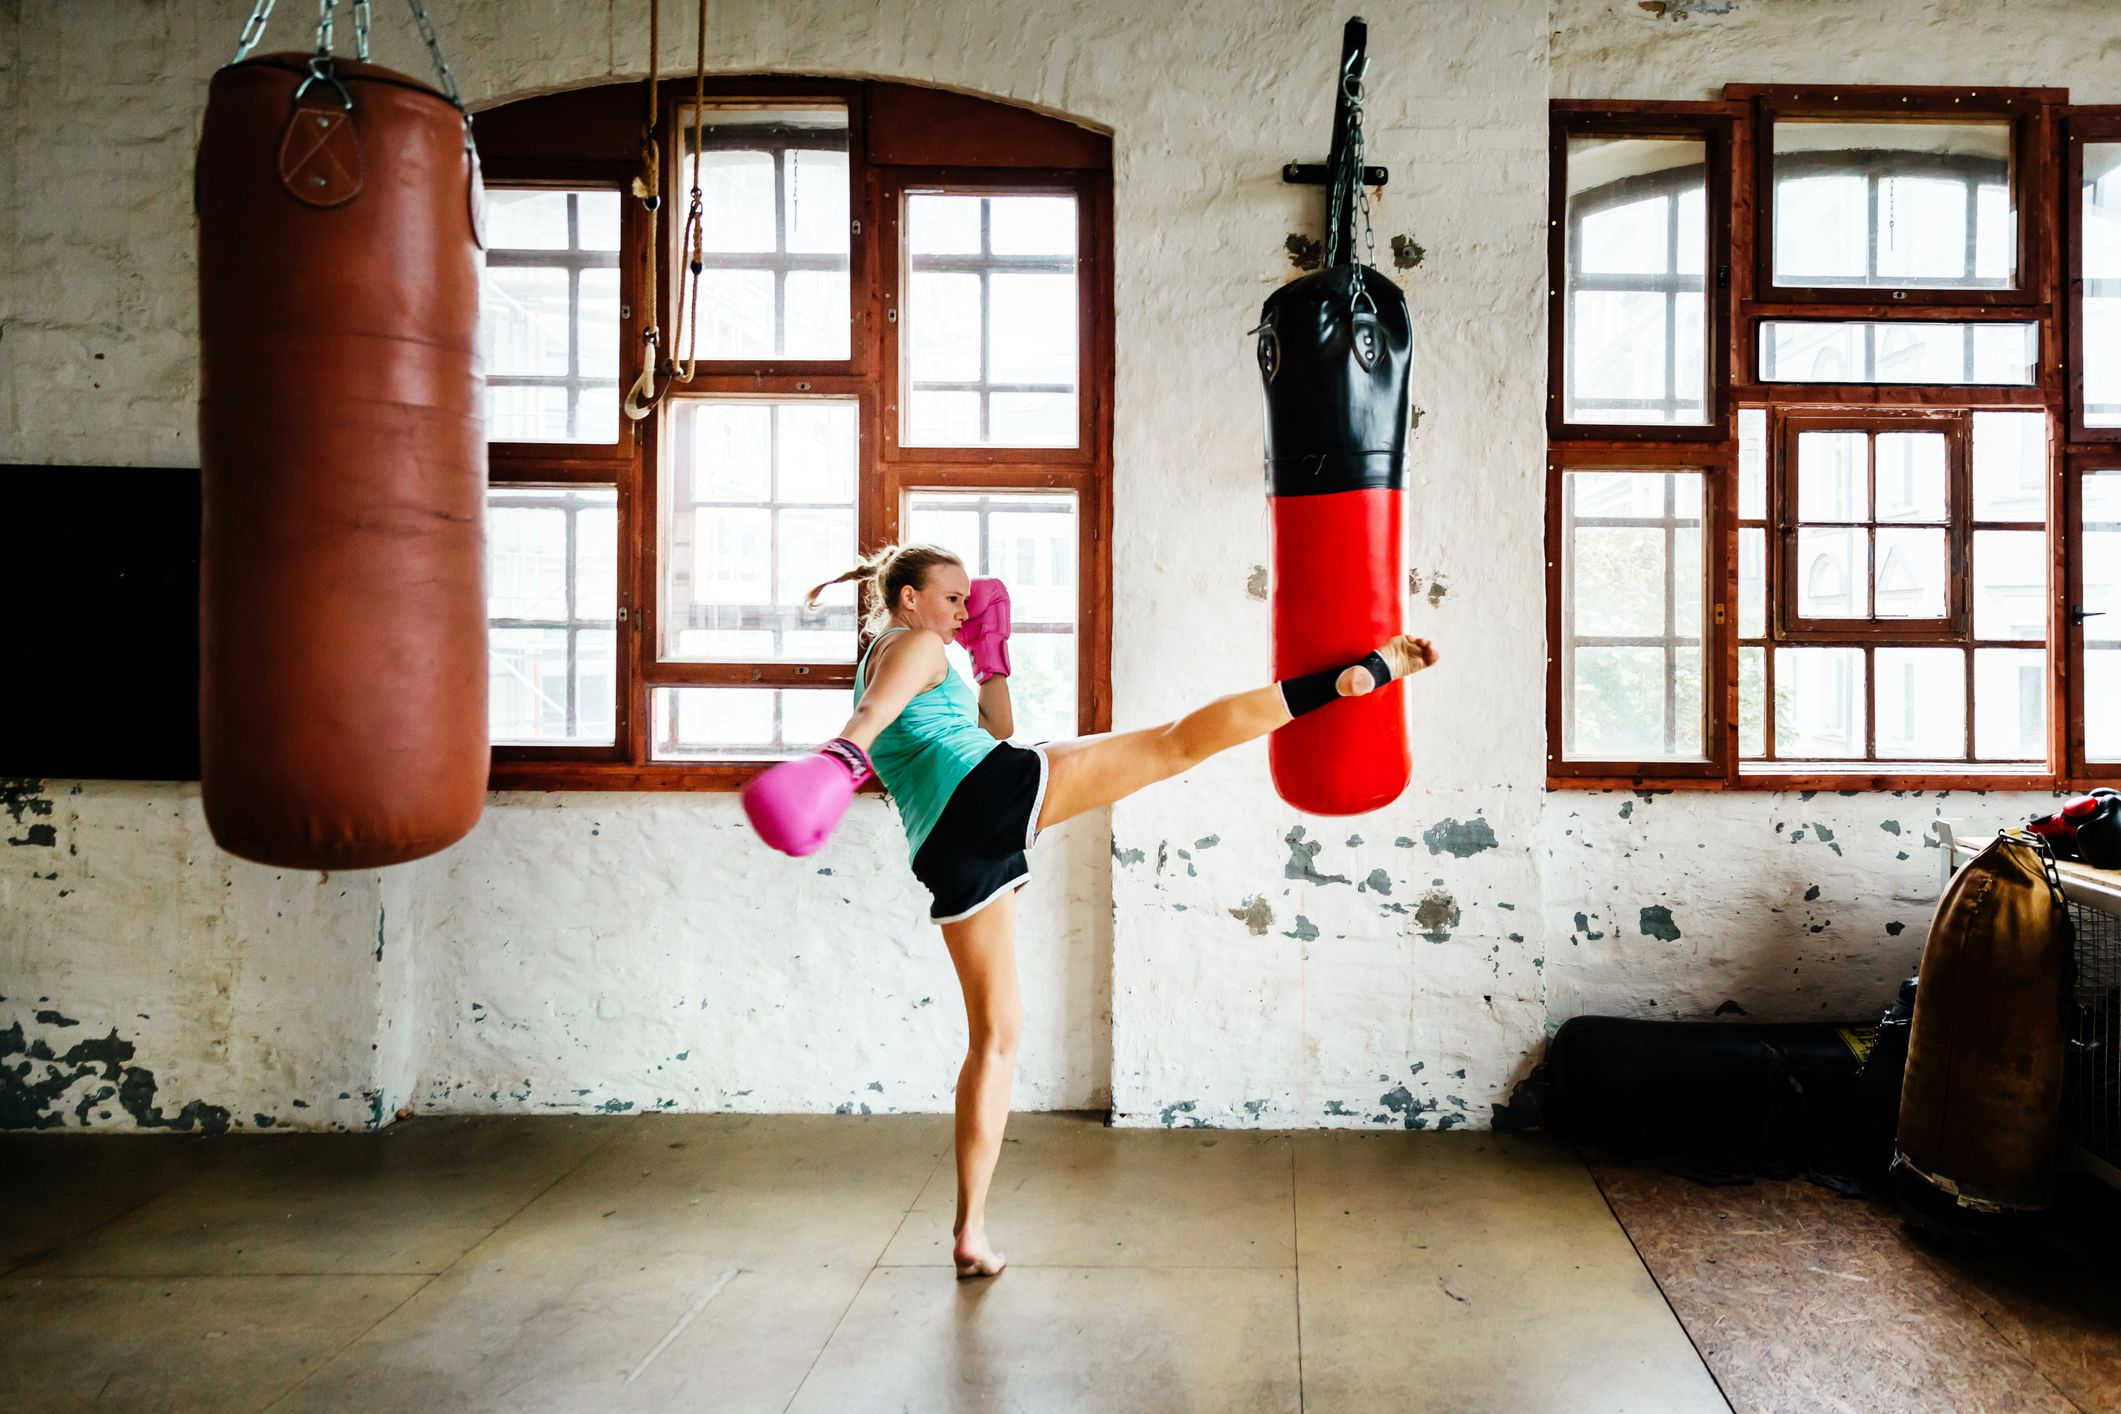 The 7 Best Online Kickboxing Classes of 2020